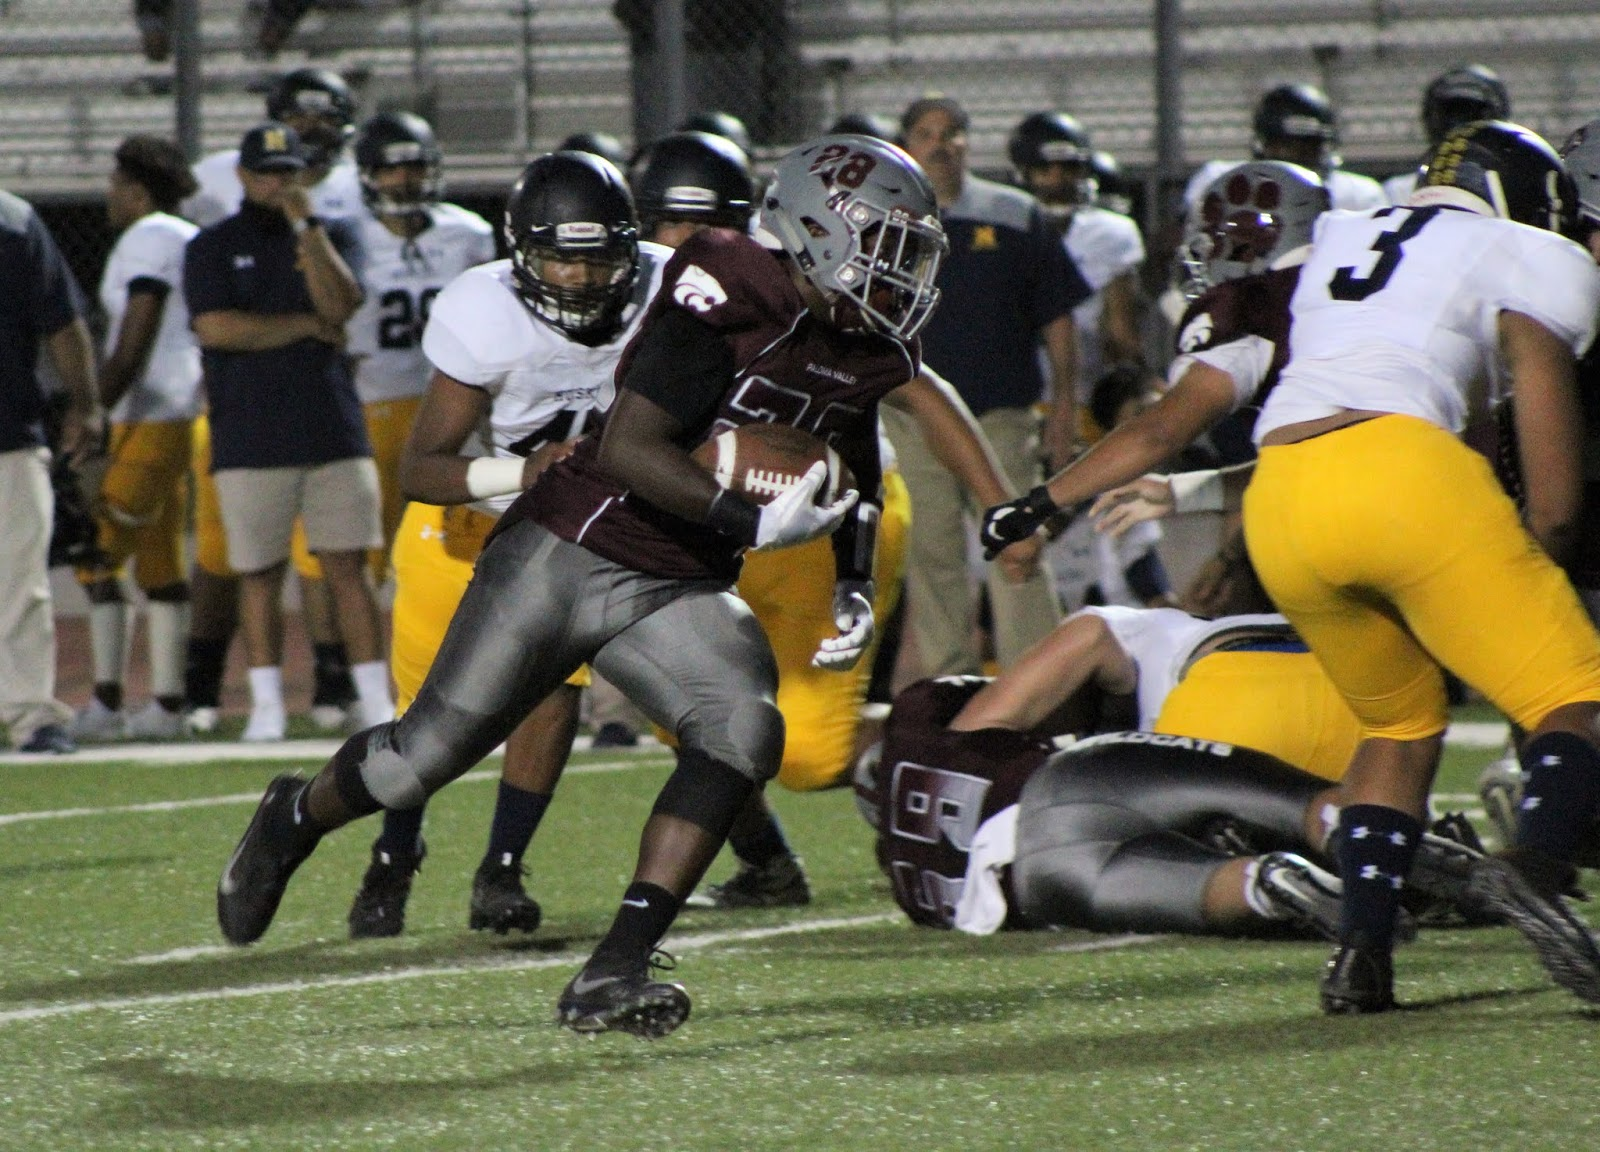 Paloma Valley Wins Home Football Opener Behind Carvalho